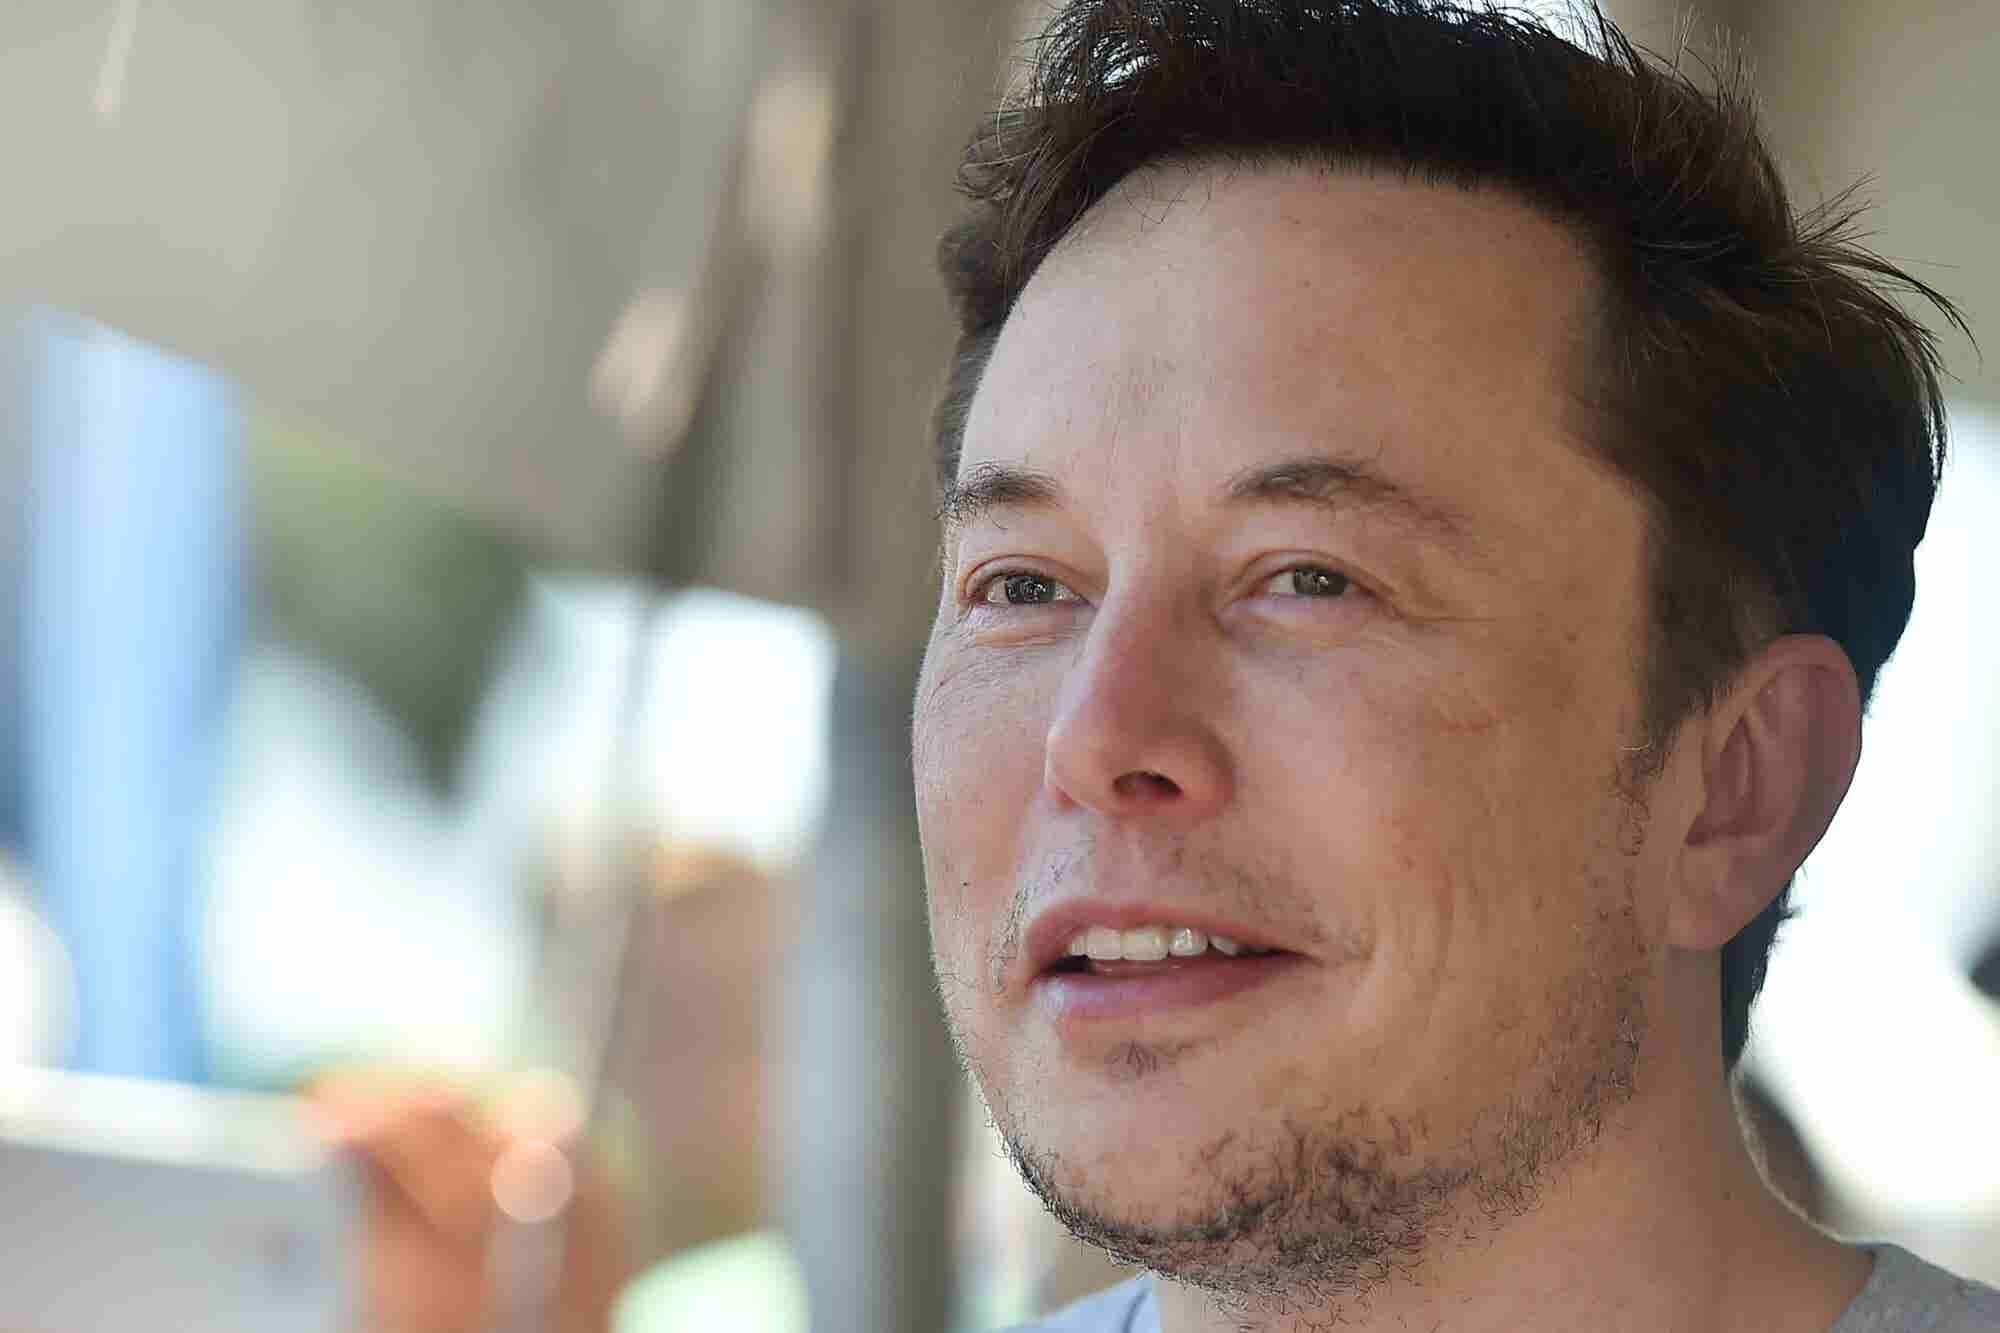 Elon Musk's New Tweet Raises Eyebrows. 3 Things to Know Today.